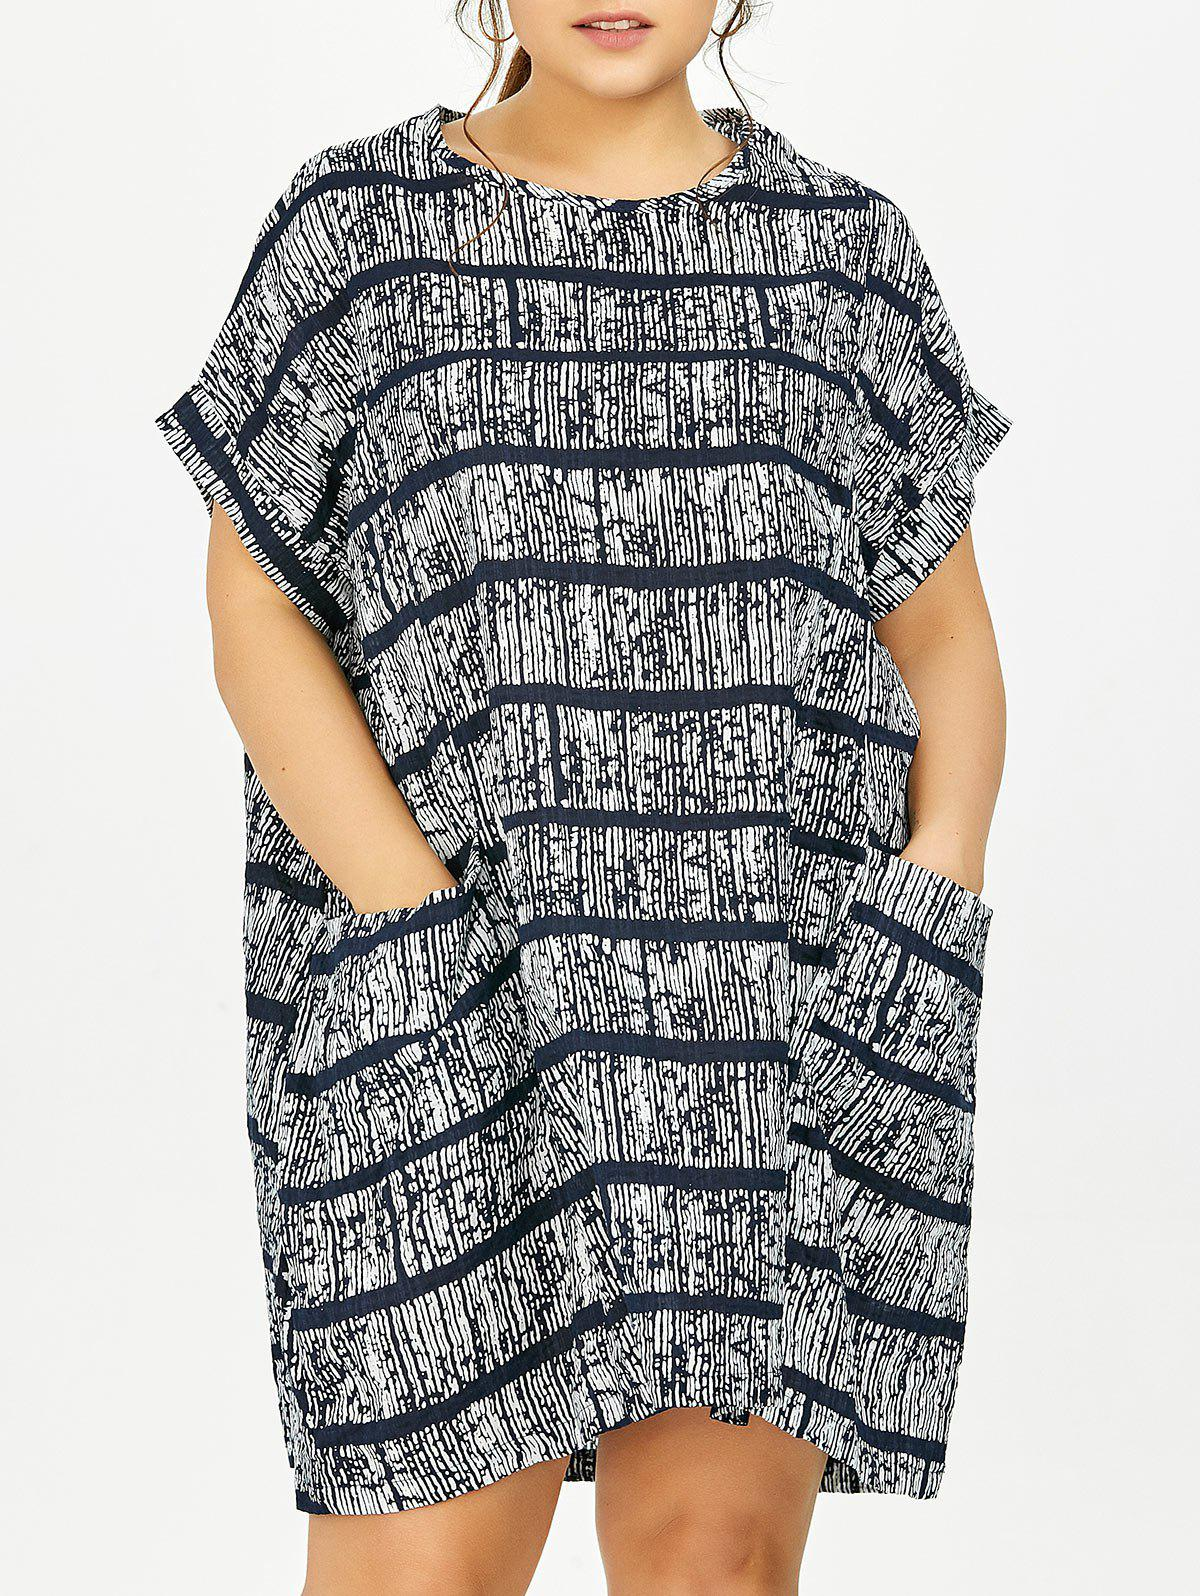 Plus Size Tie Dye Casual Stripe Dress - GRAY ONE SIZE